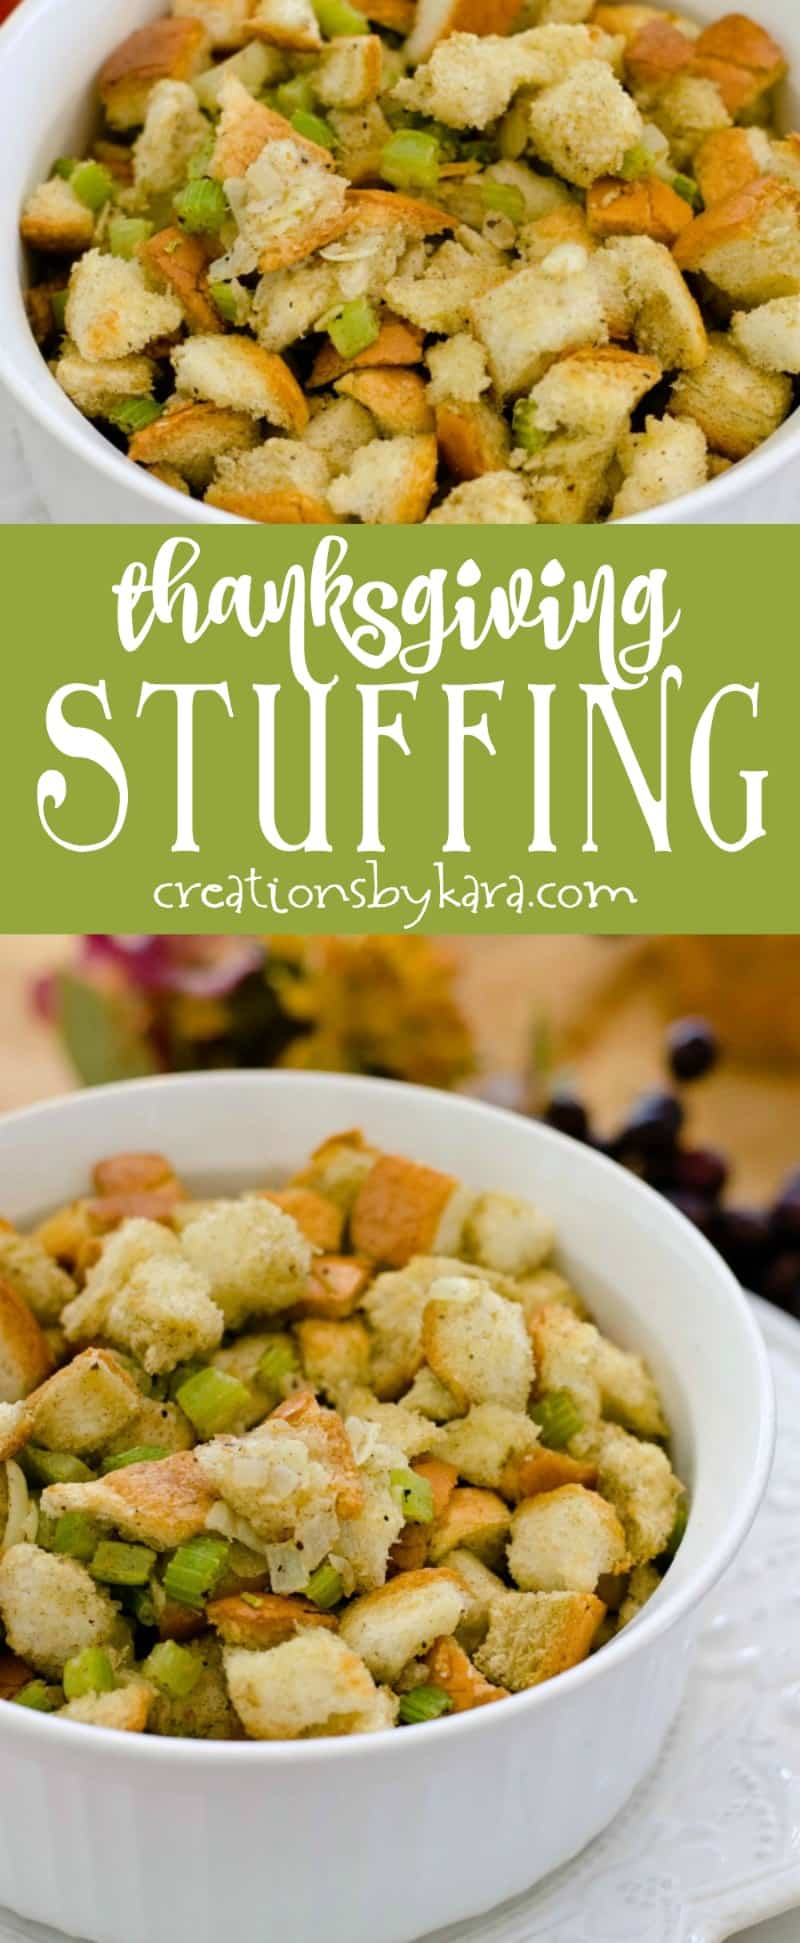 Easy Herb Stuffing Recipe - a favorite Thanksgiving recipe for years! #thanksgiving #stuffing